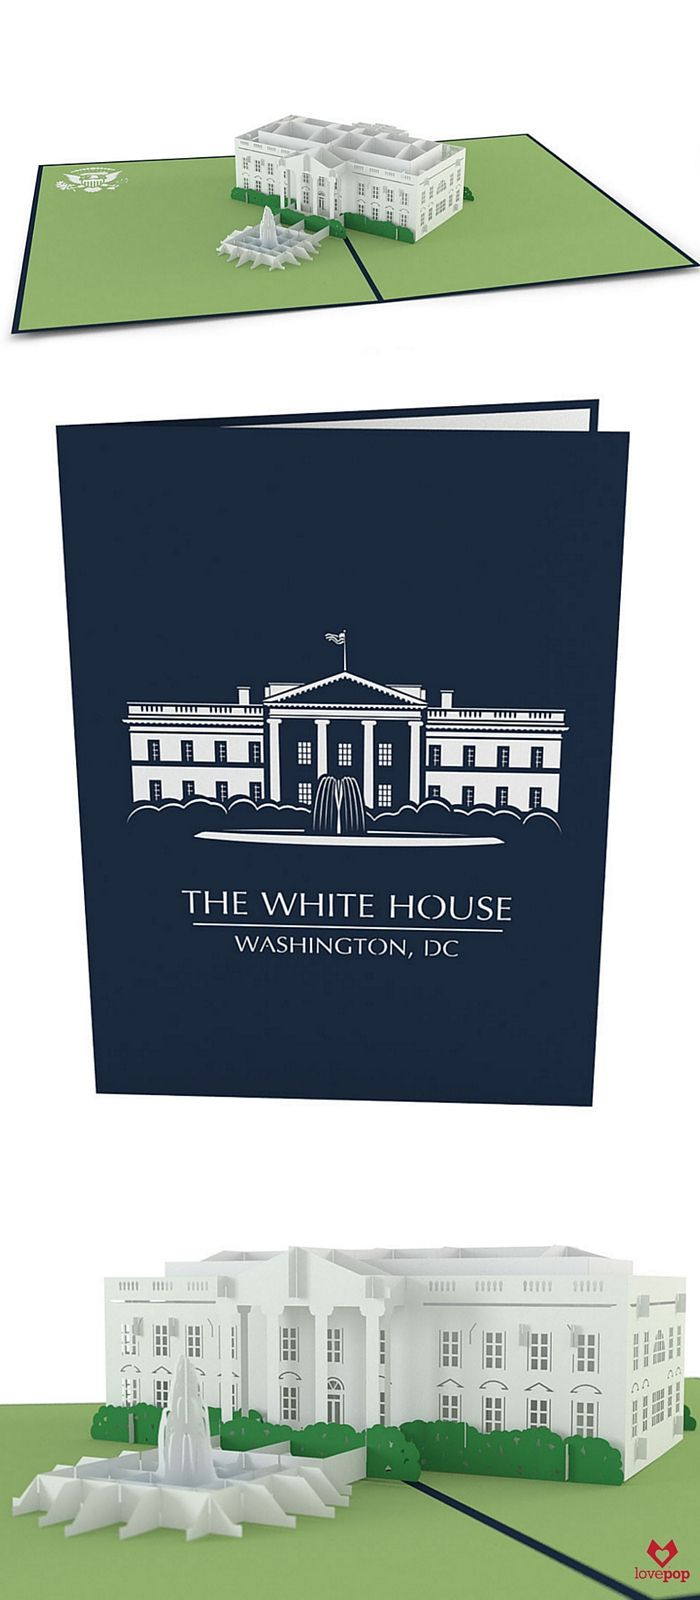 Washington Dc Popout Map%0A Celebrate a love for the USA with a paper art pop up White House in this